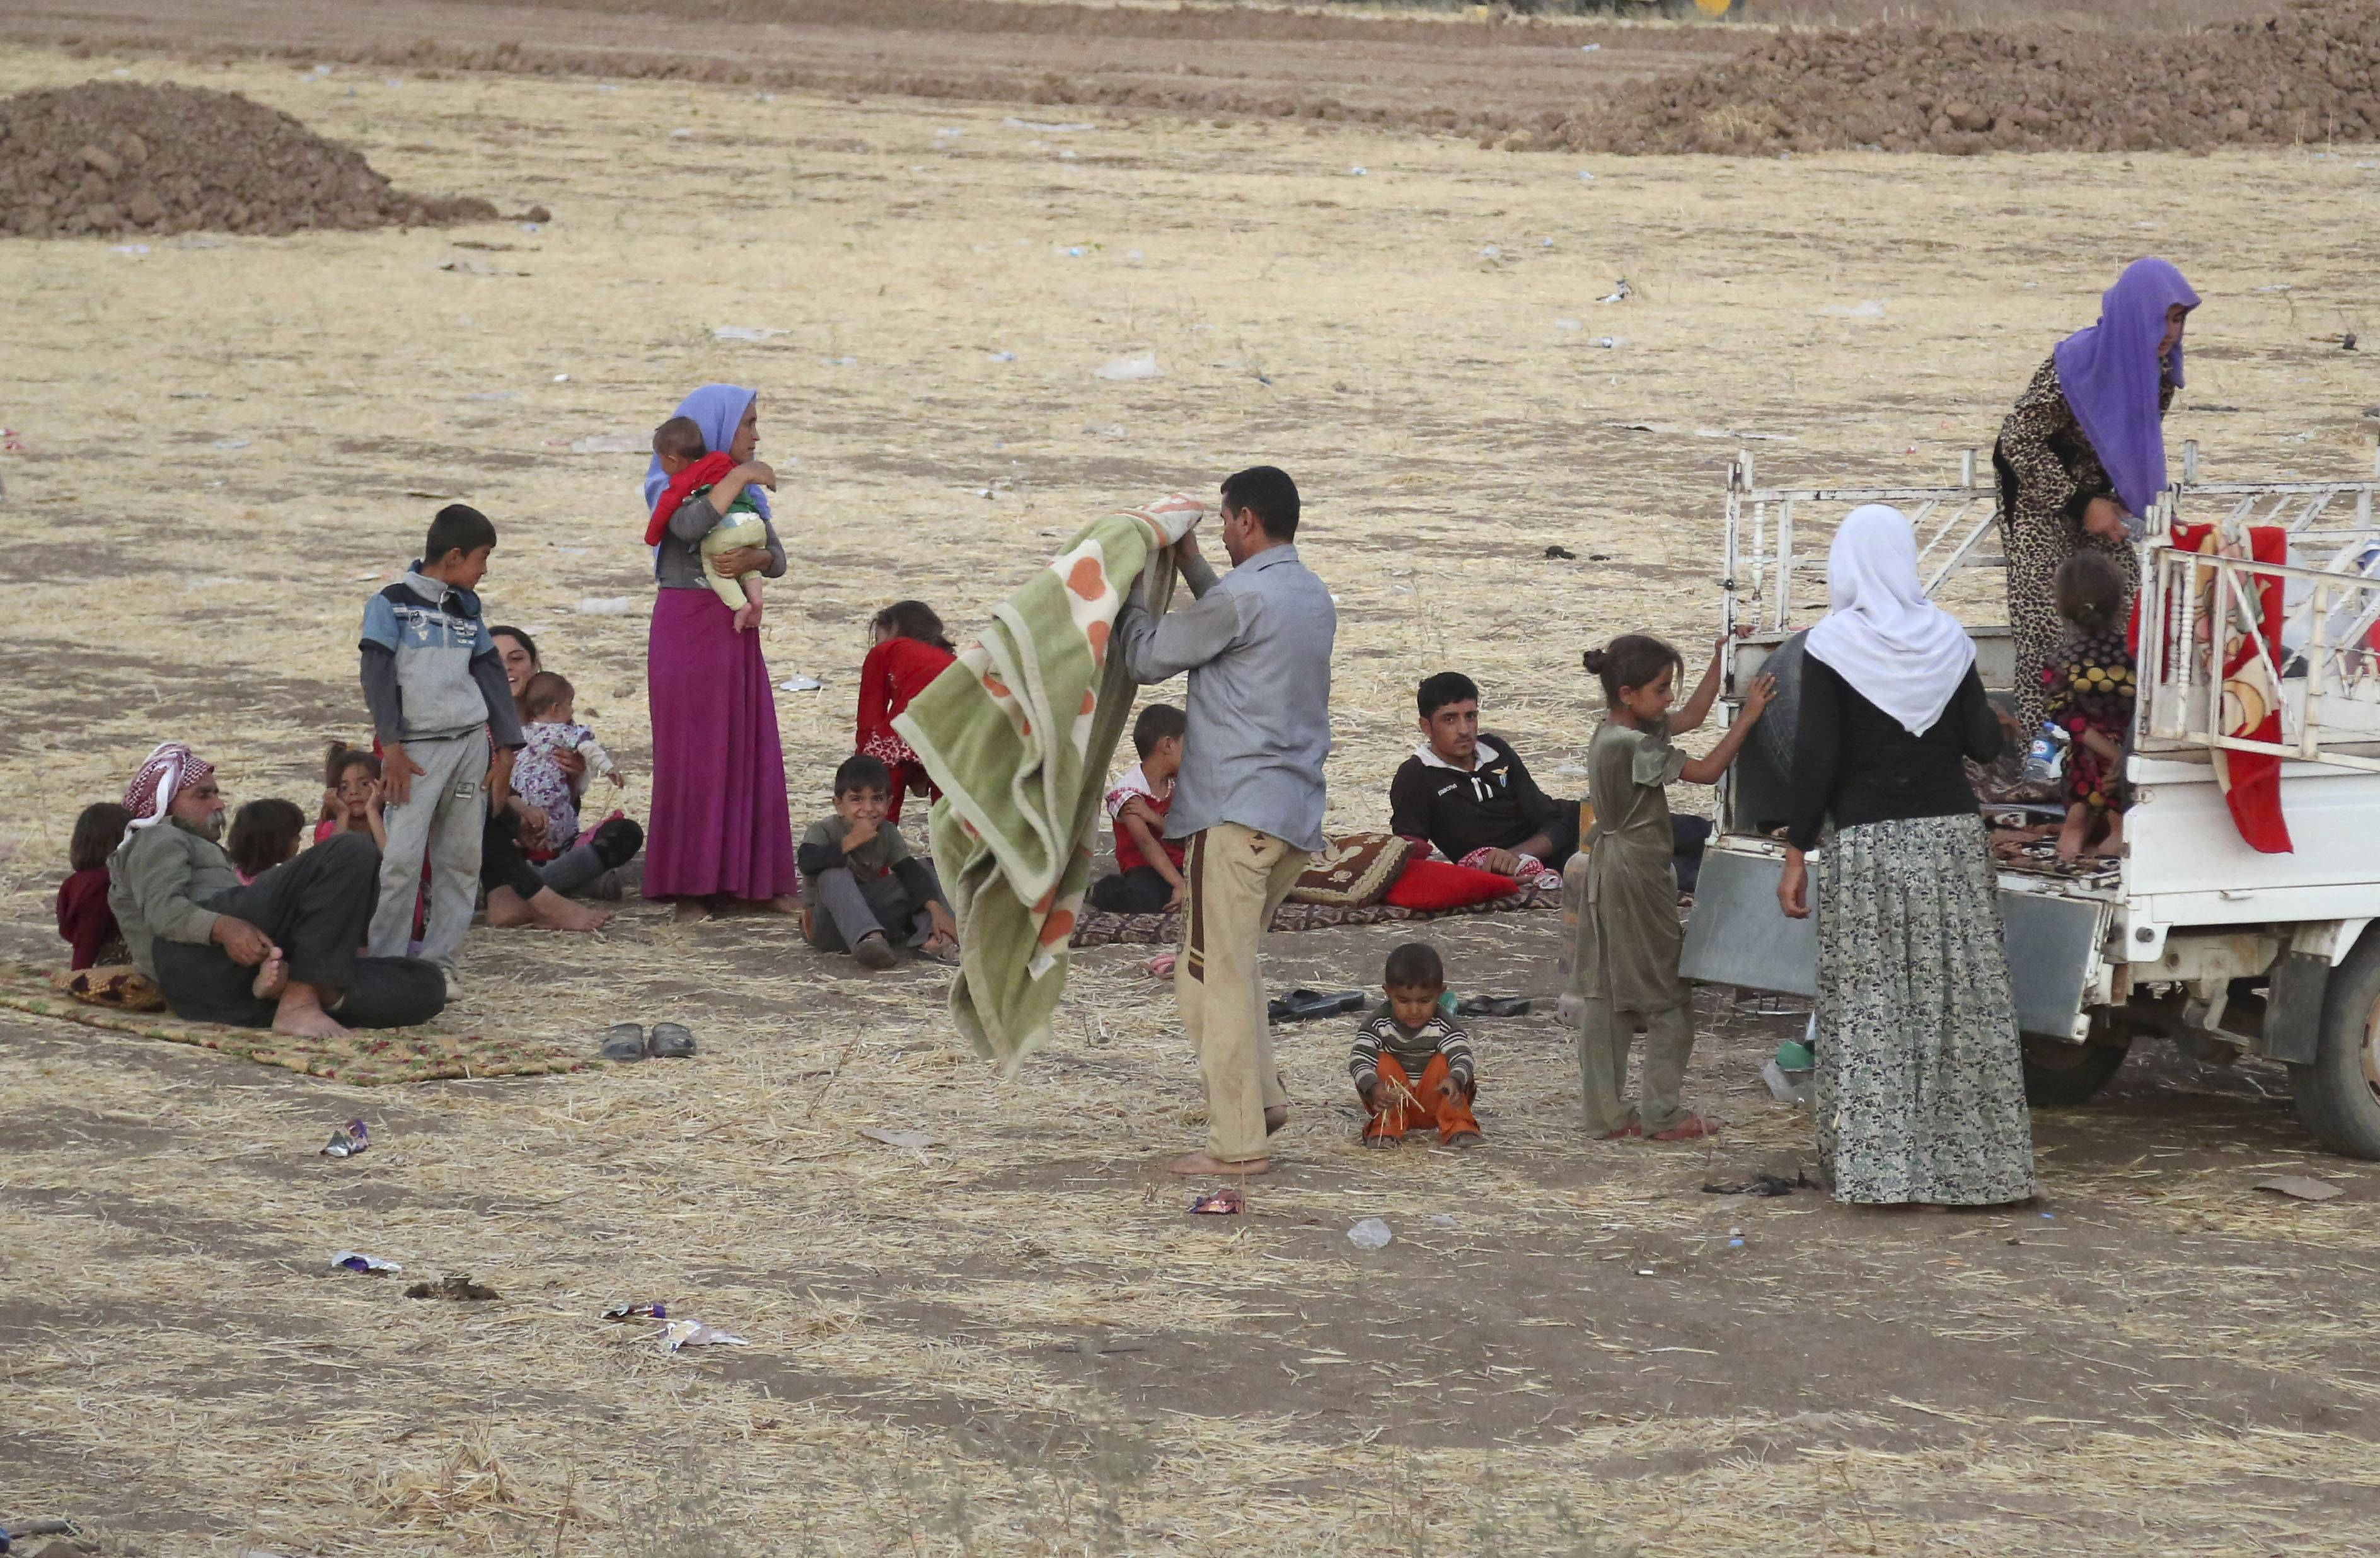 Displaced Iraqis from the Yazidi community settle Saturday outside the camp of Bajid Kandala at Feeshkhabour town near the Syria-Iraq border.